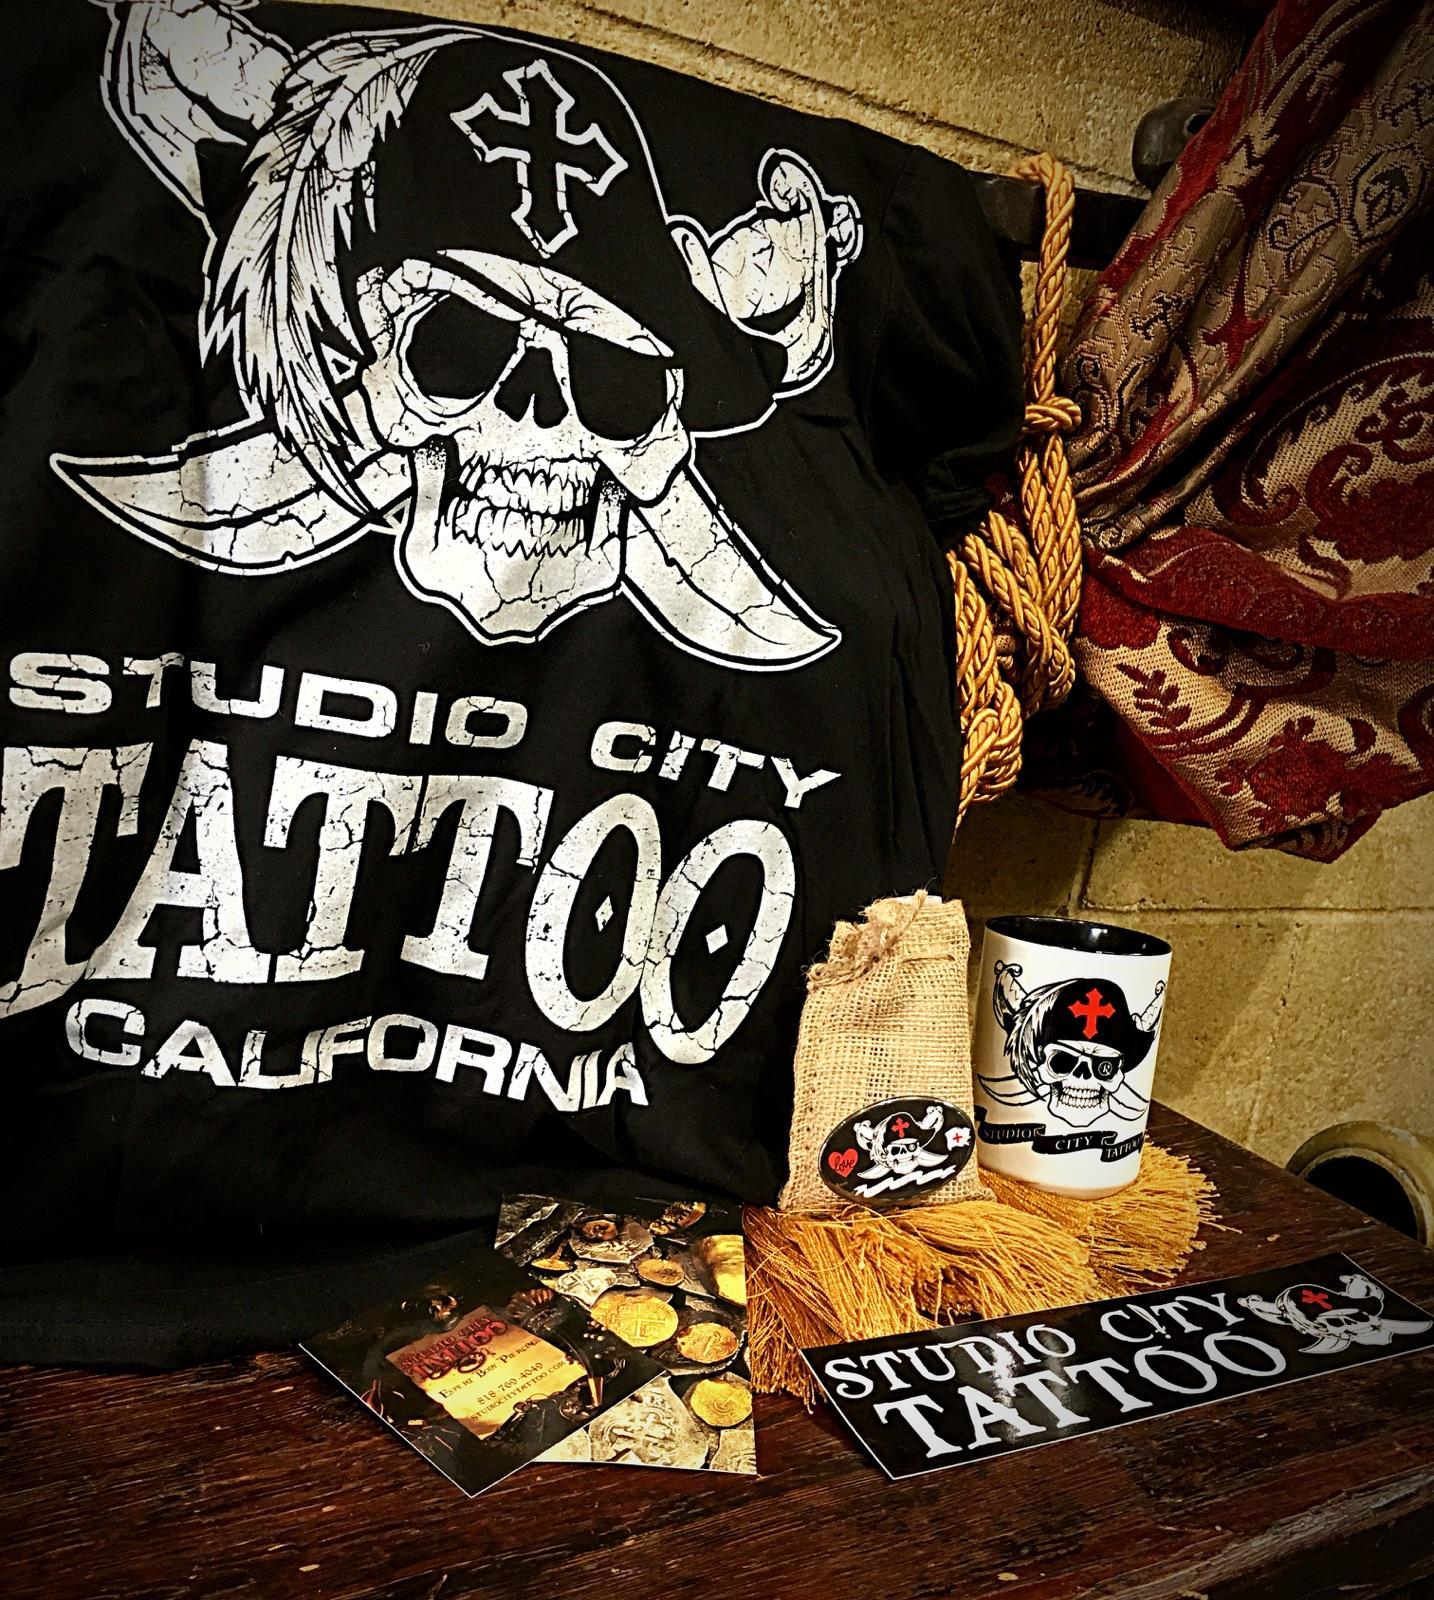 free Studio City tattoo Shirt gift certificate